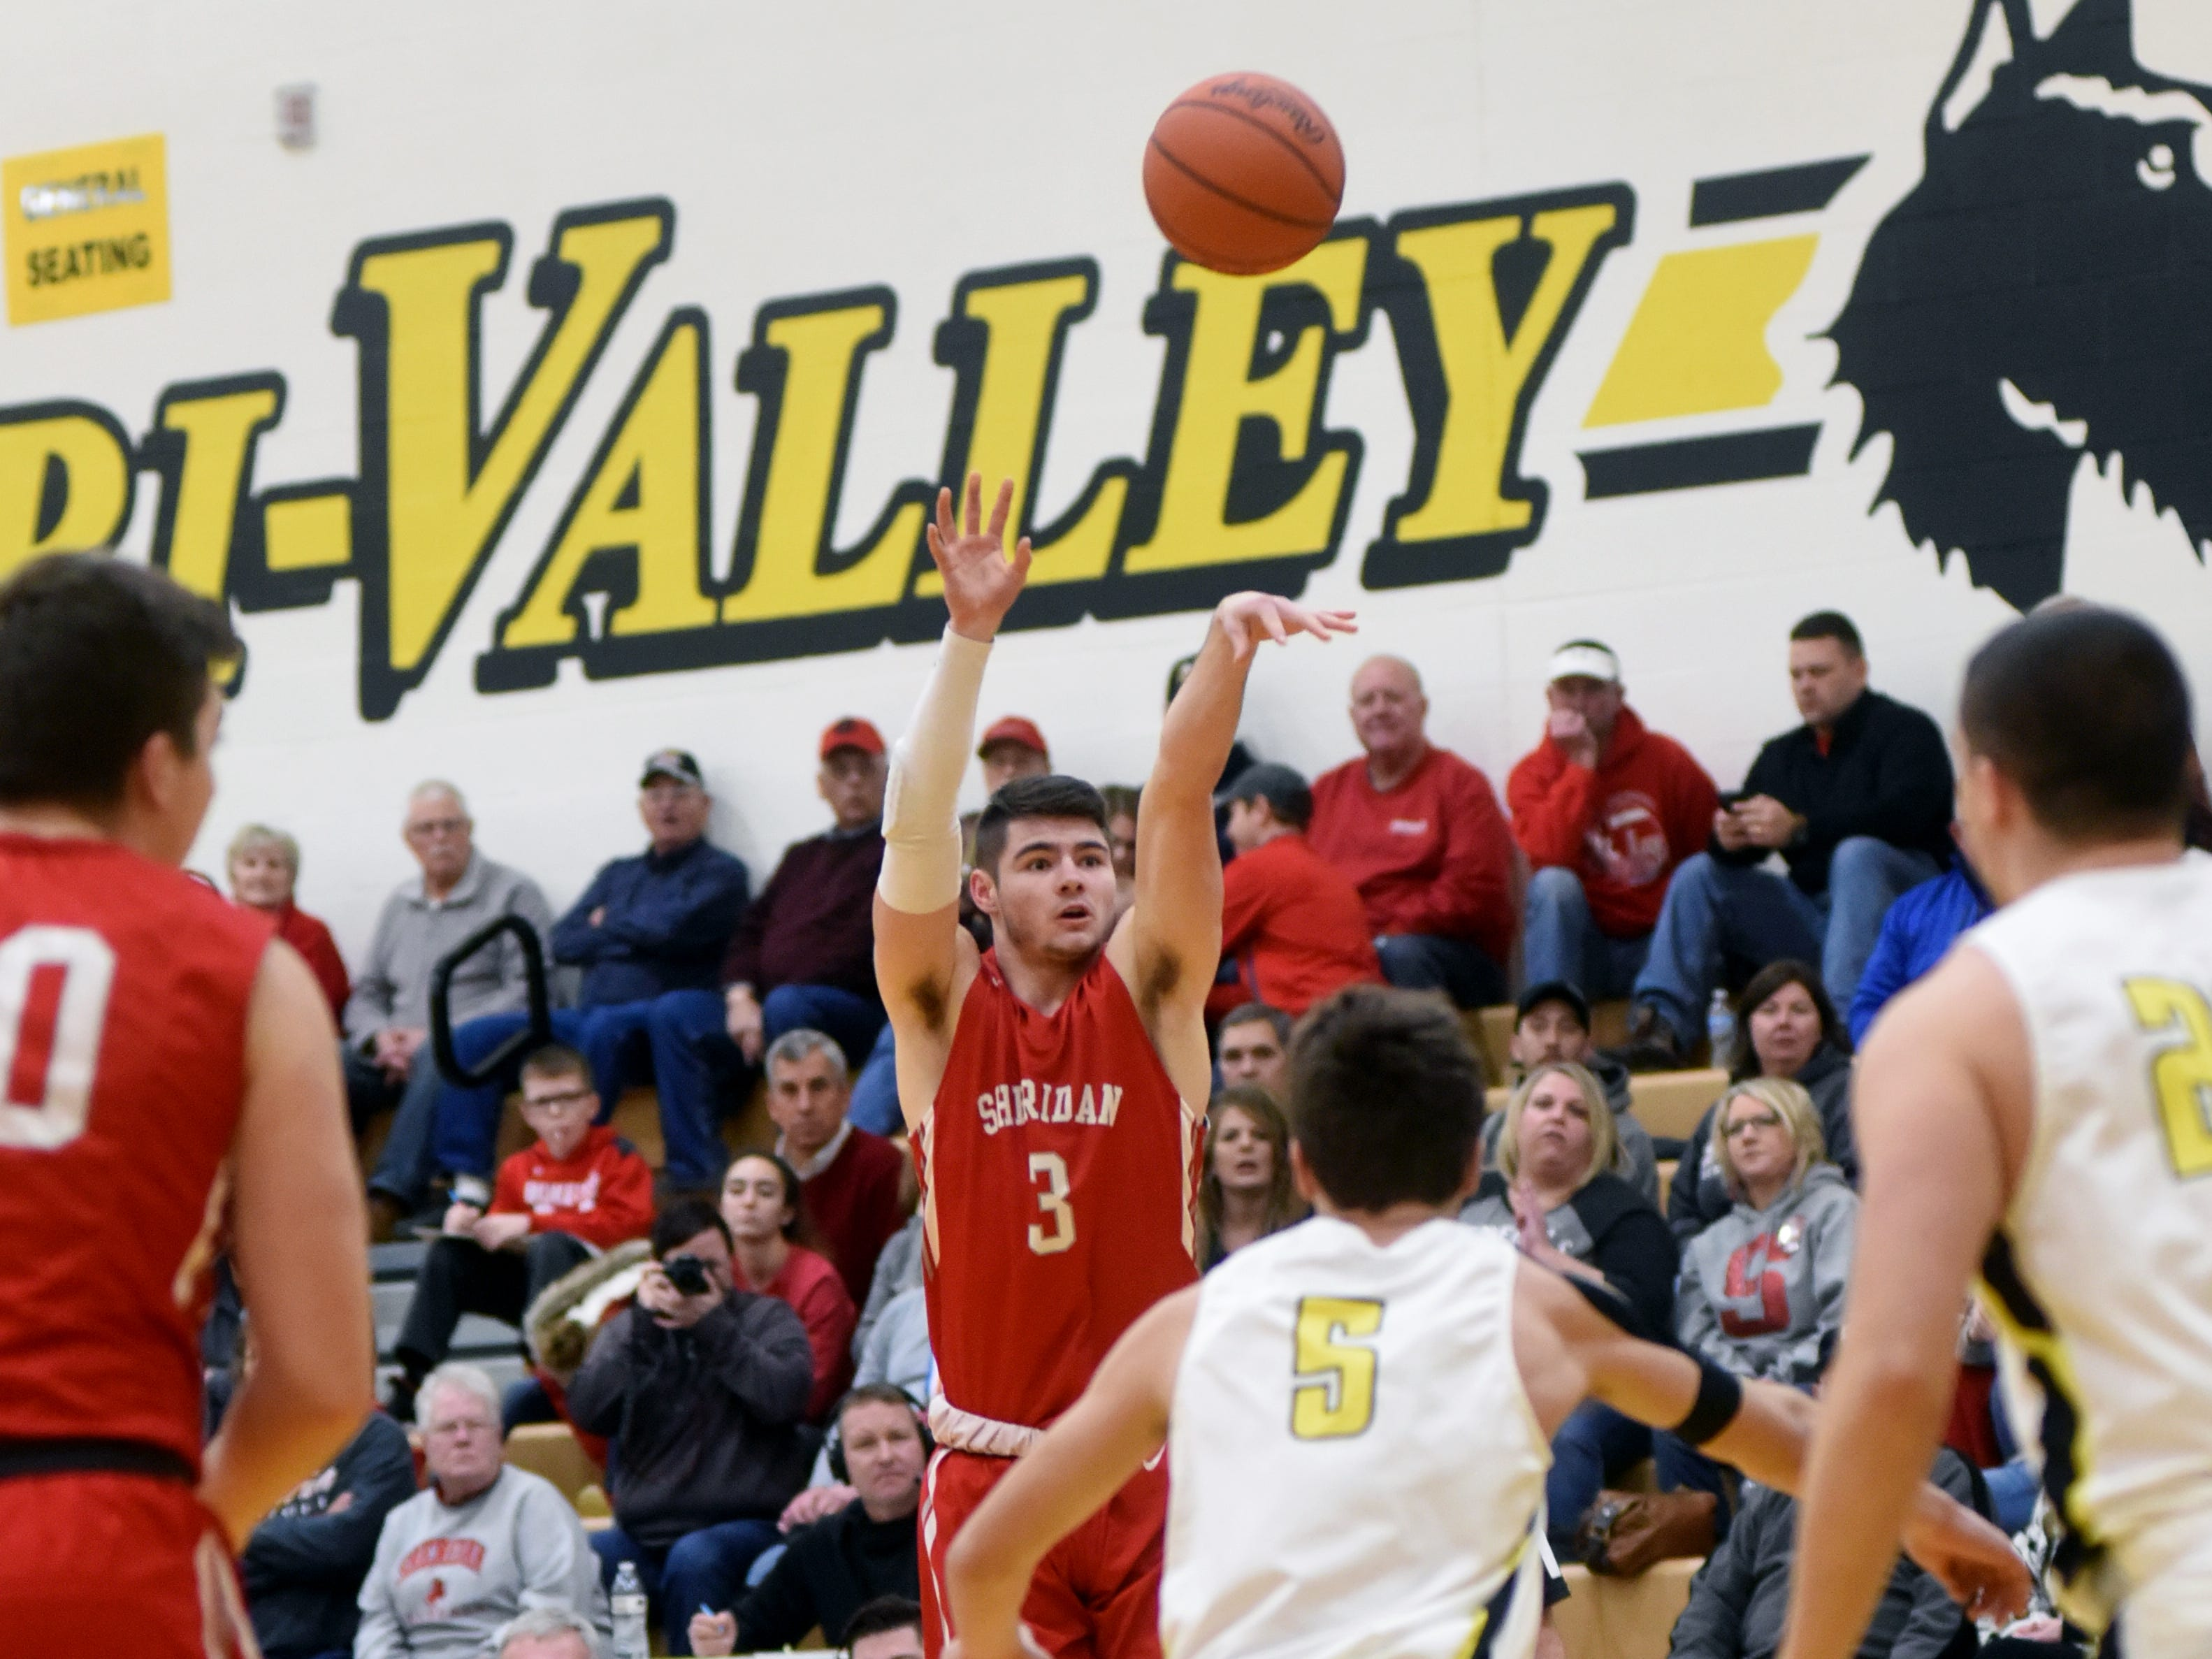 Ethan Heller shoots a 3 against Tri-Valley on Friday night in Dresden.